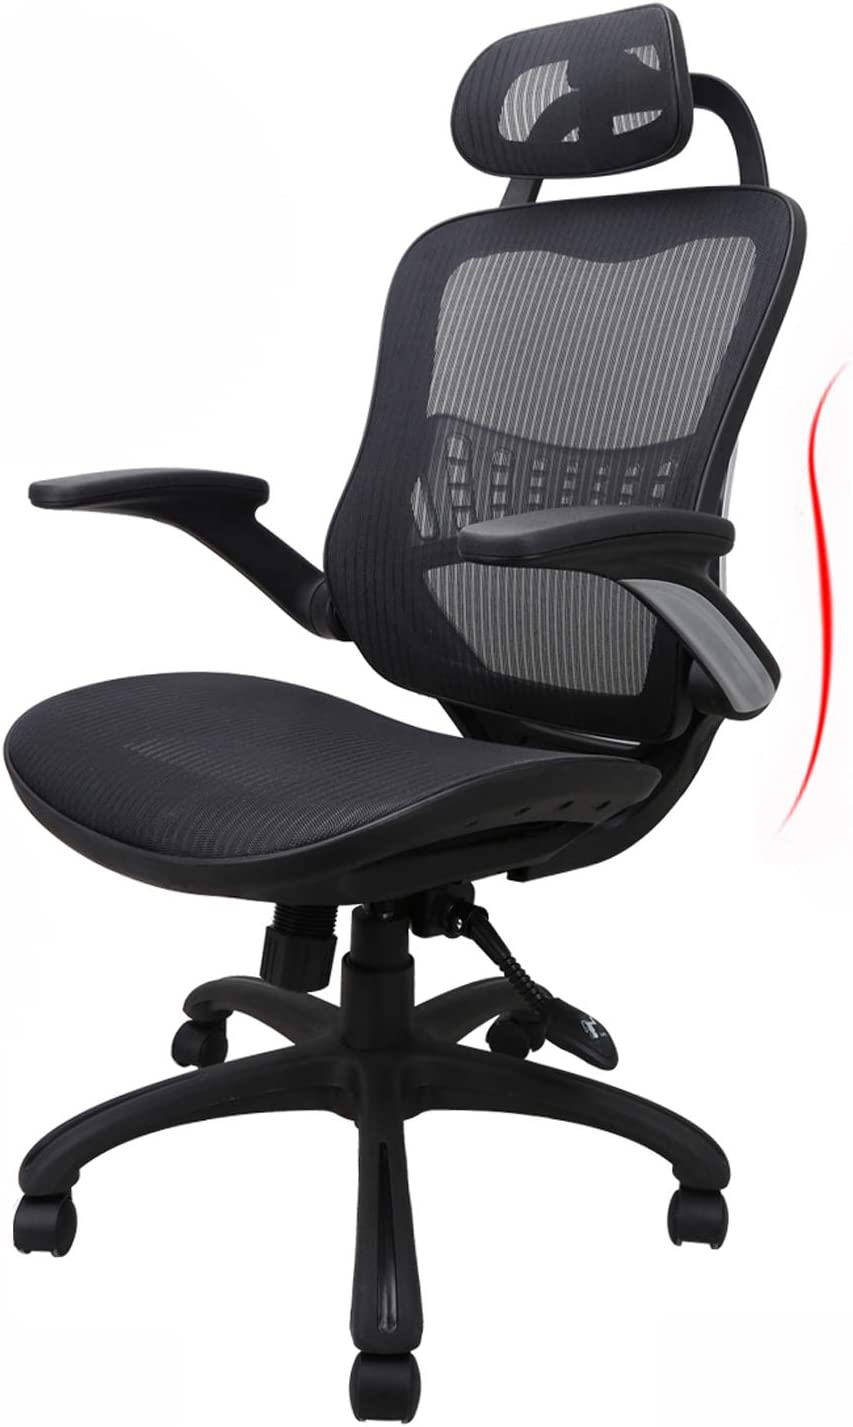 Ergousit Ergonomic Office Chair, Computer Desk Chair with High Back Support, Desk Chair with Flip-up Arms and Adjustable headrest, Adjustable Height Task Chair(Black)